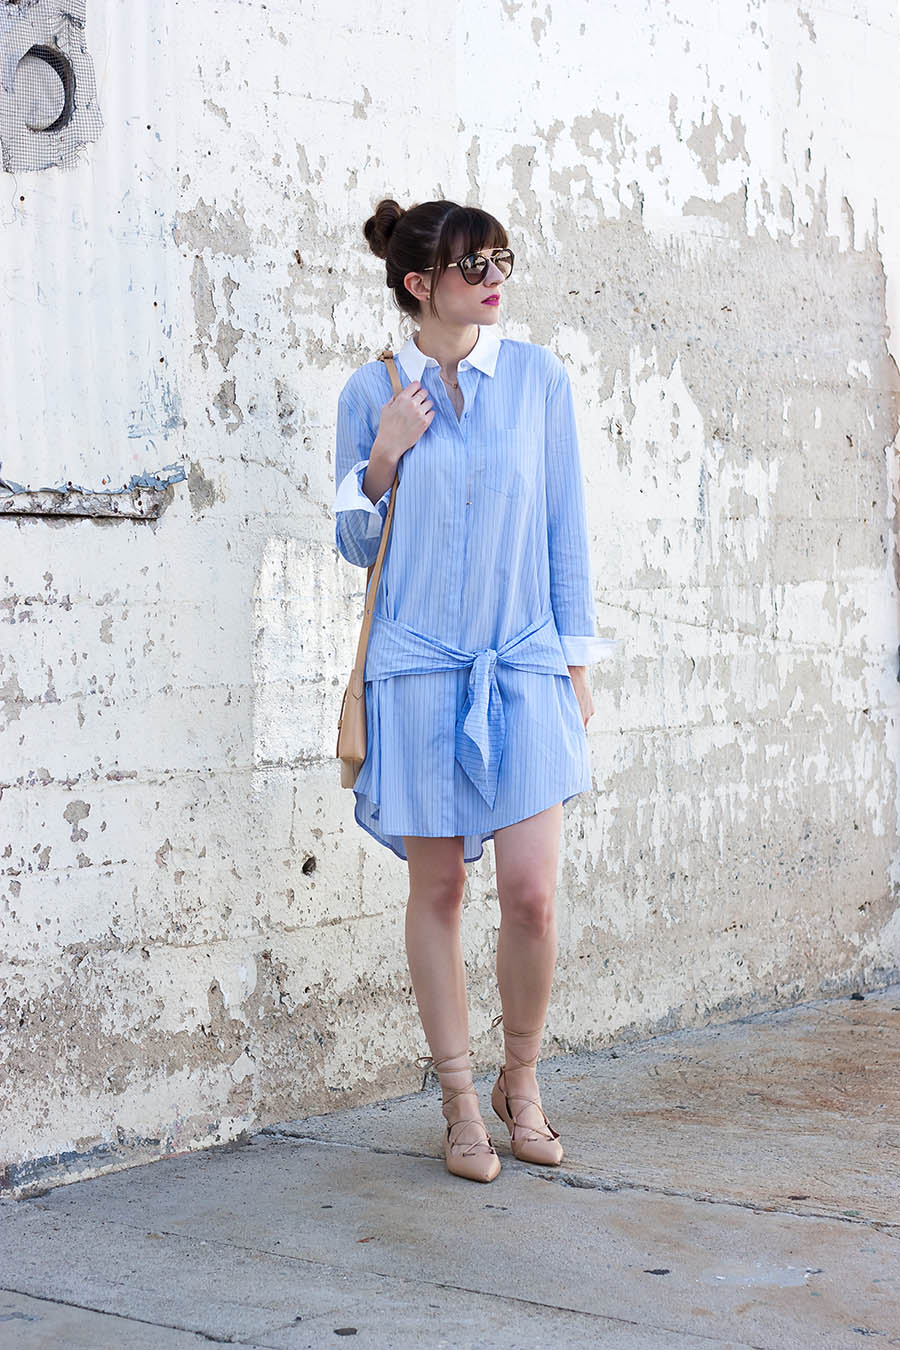 Tie Waist Shirtdress, Nude Lace Up Flats, Striped Shirtdress